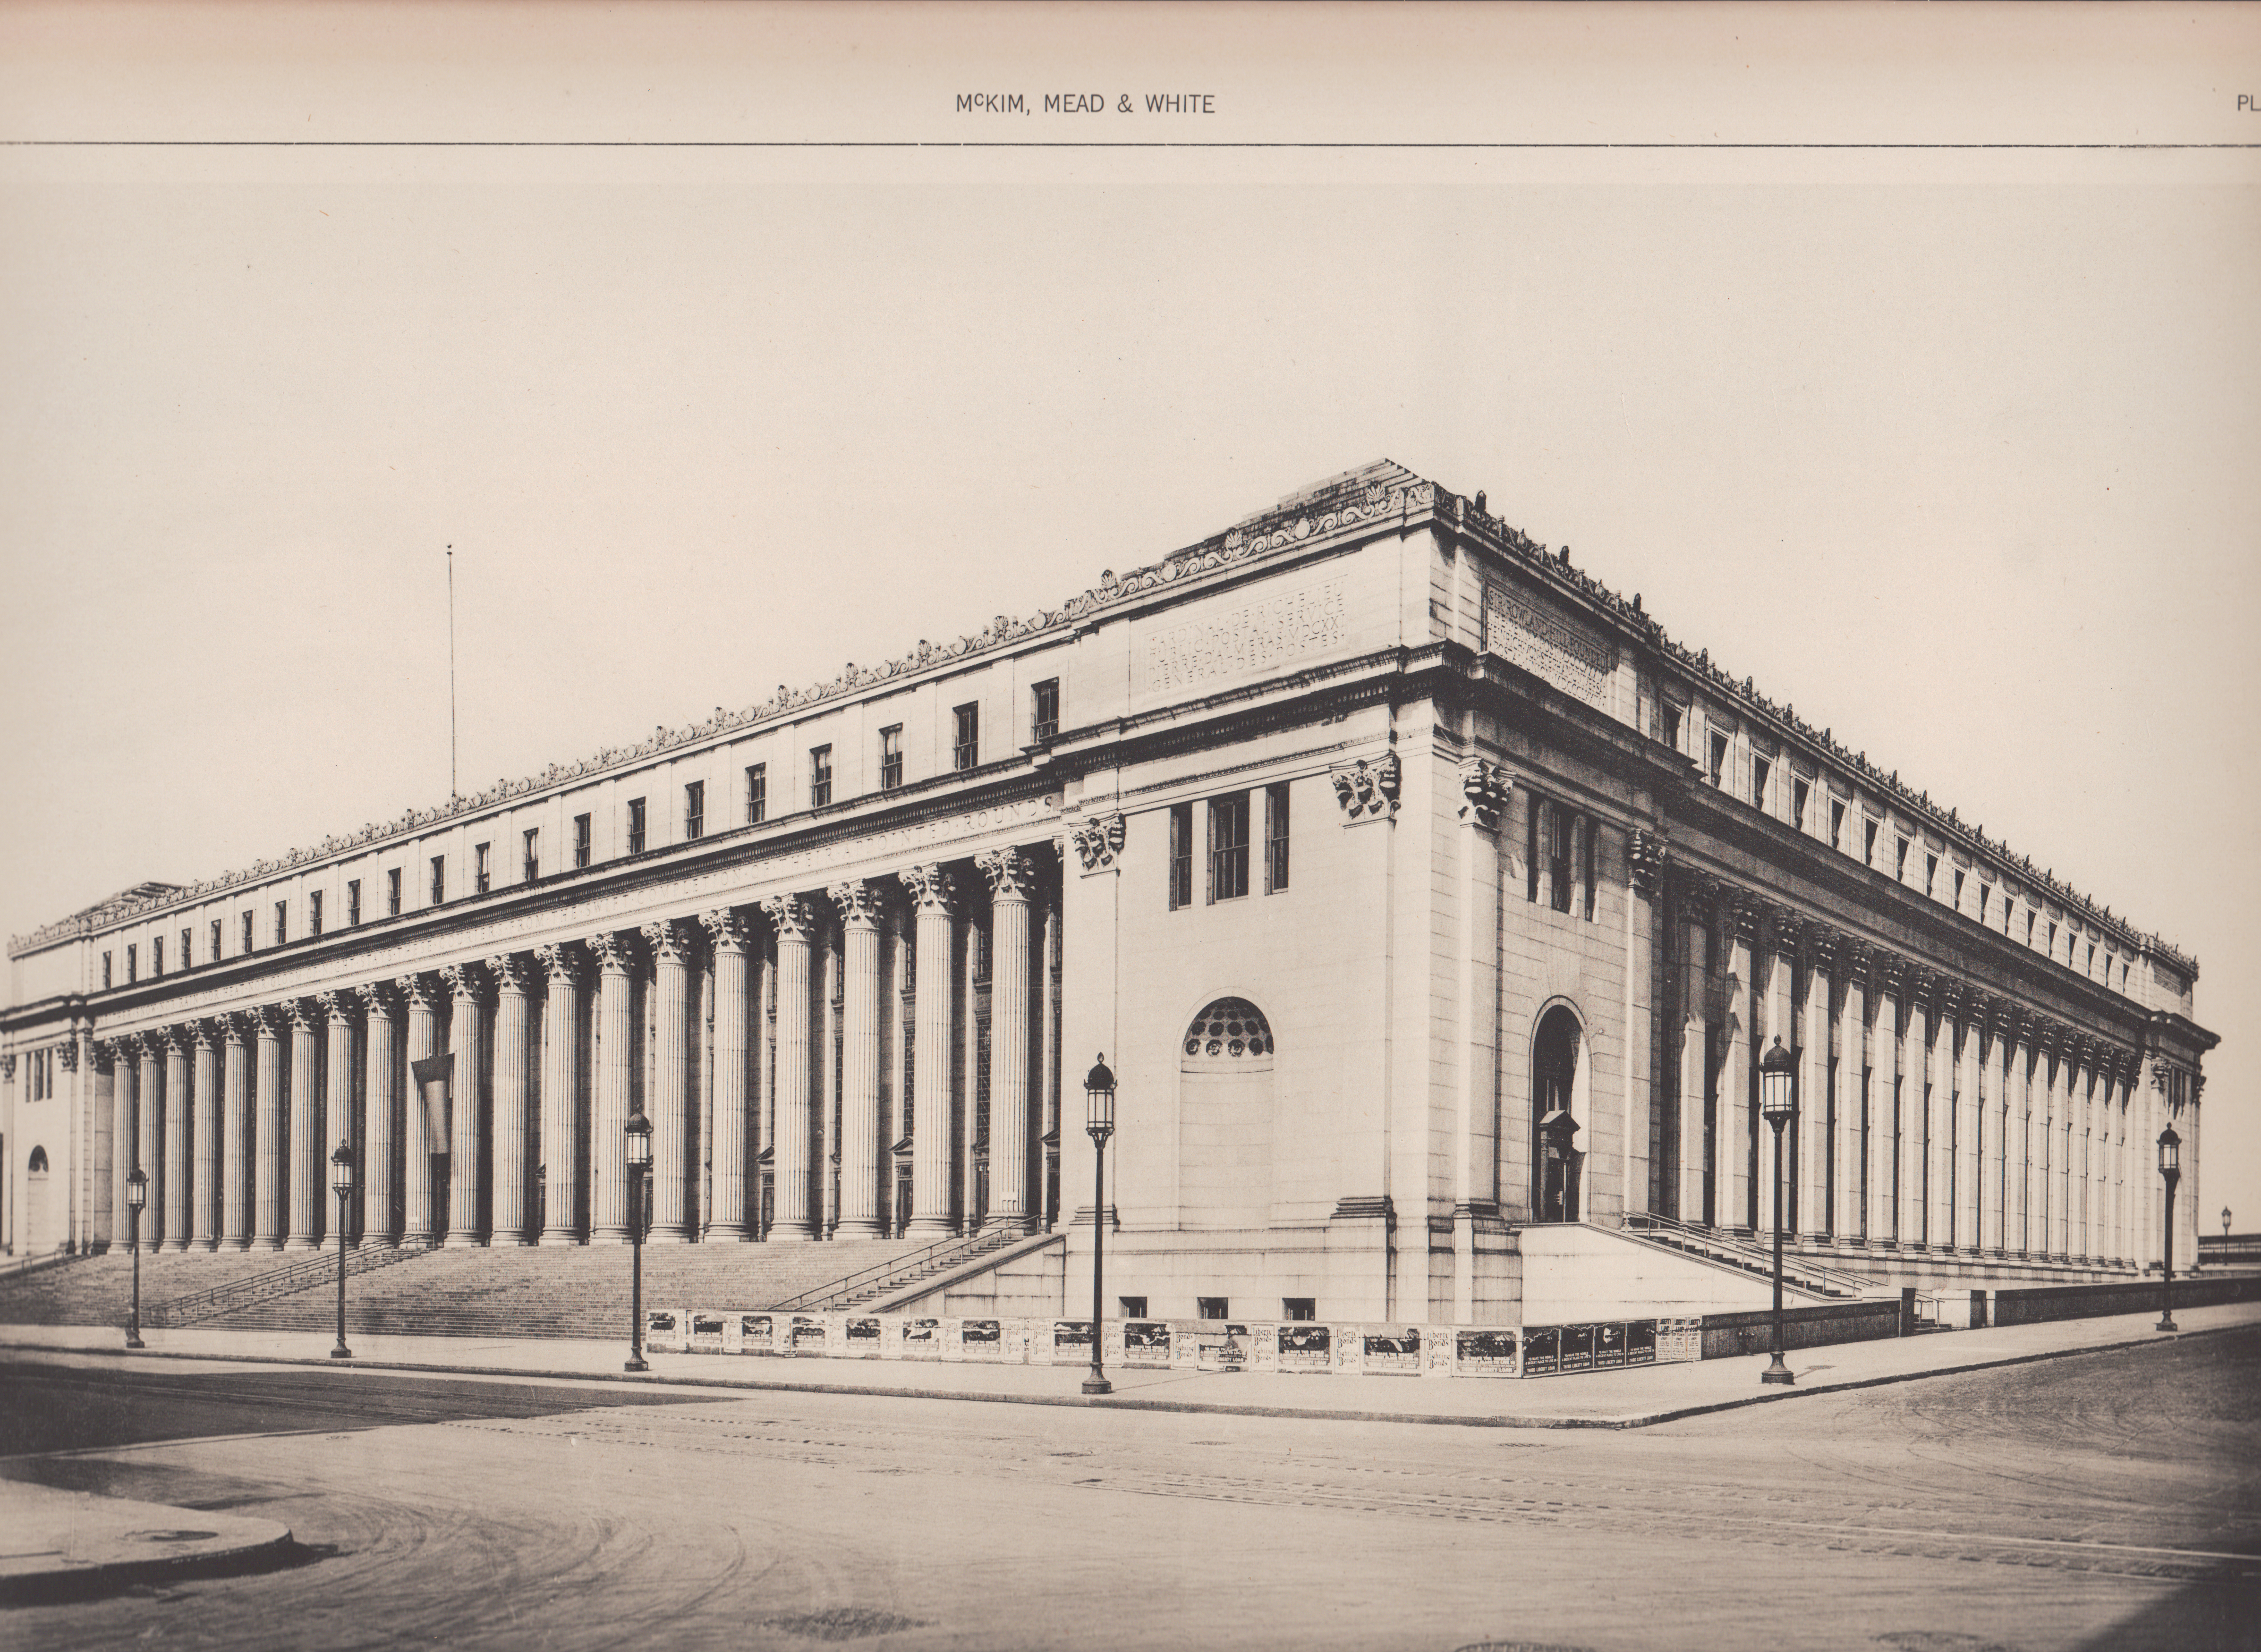 U.S. Post Office, NYC (McKim, Mead and White)